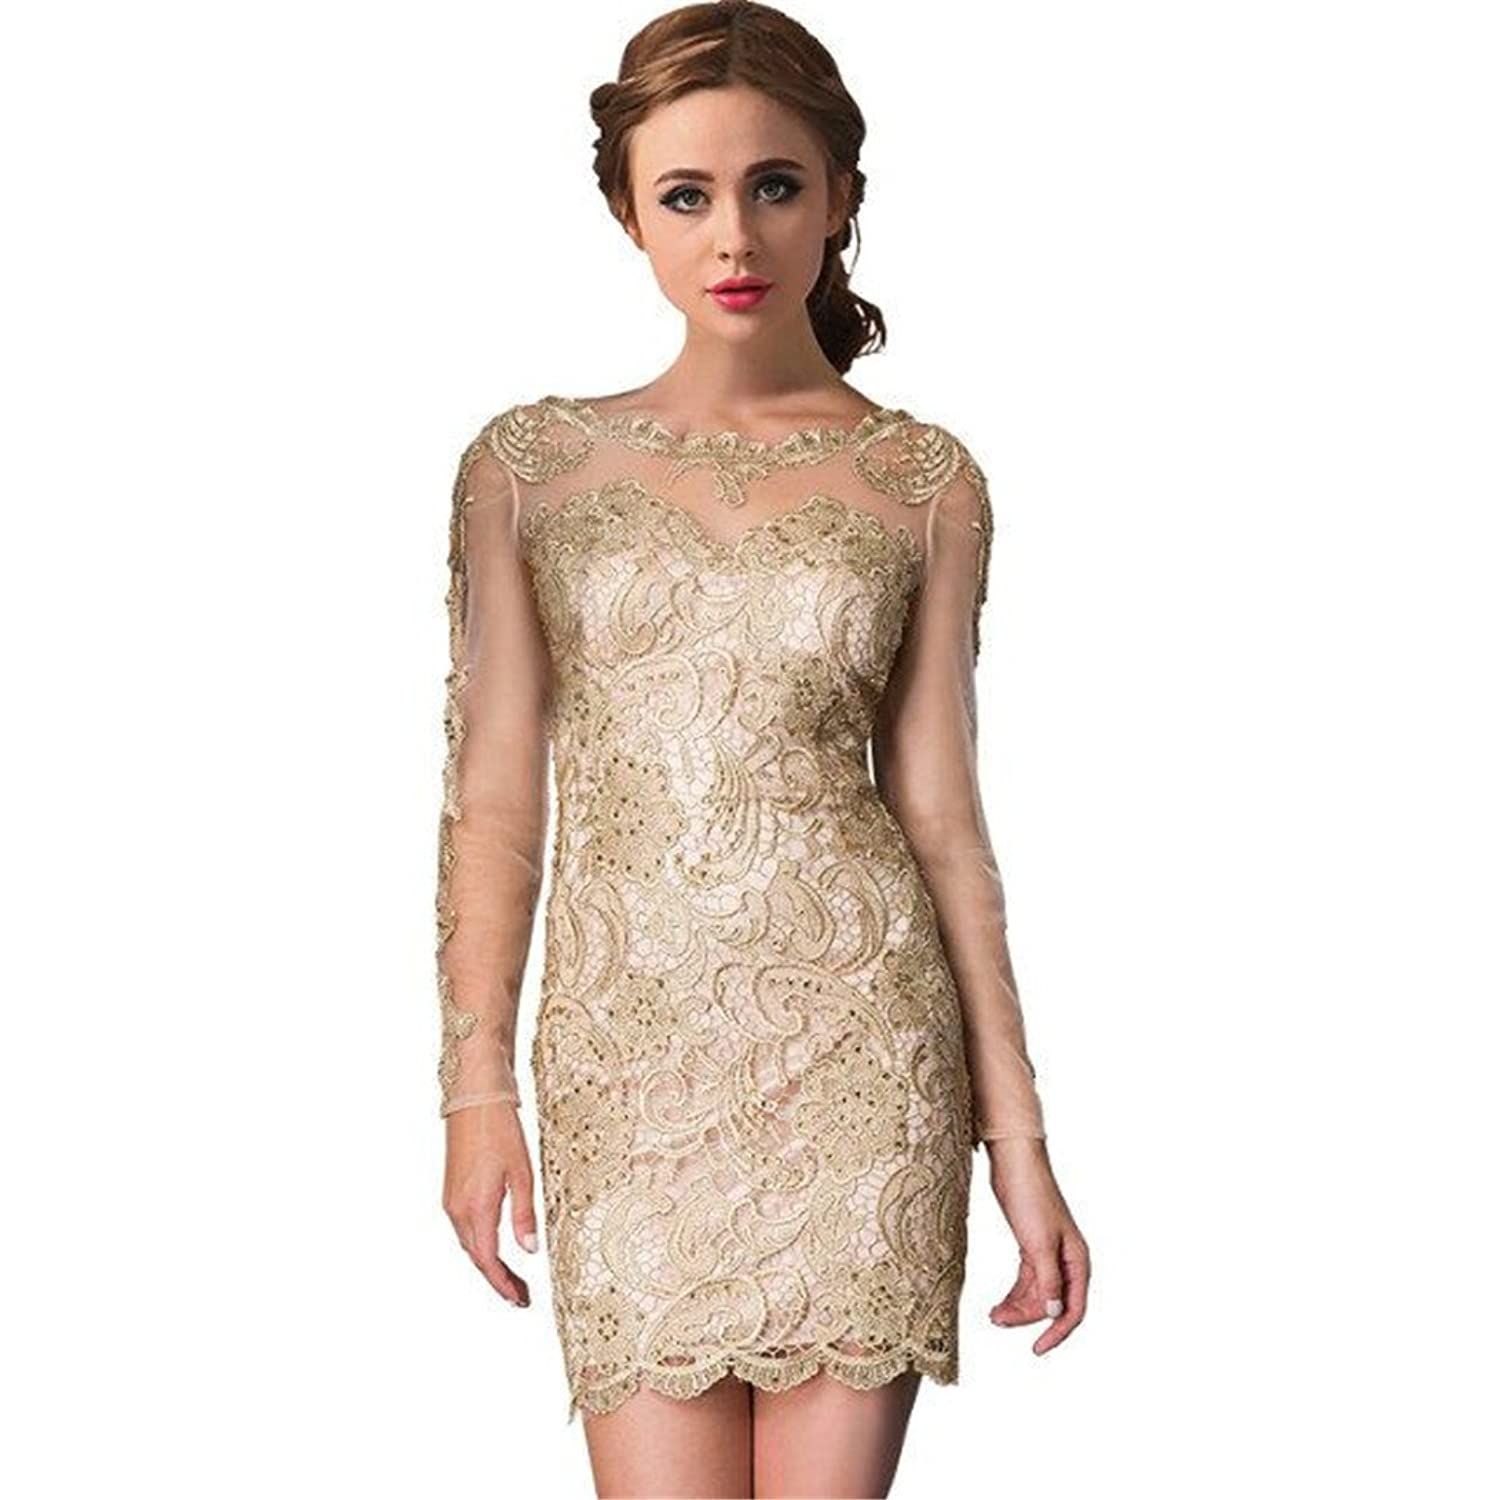 dressvip See through Cocktail Party Mini Dress Long Sleeves Evening Celebrity Gowns for Women